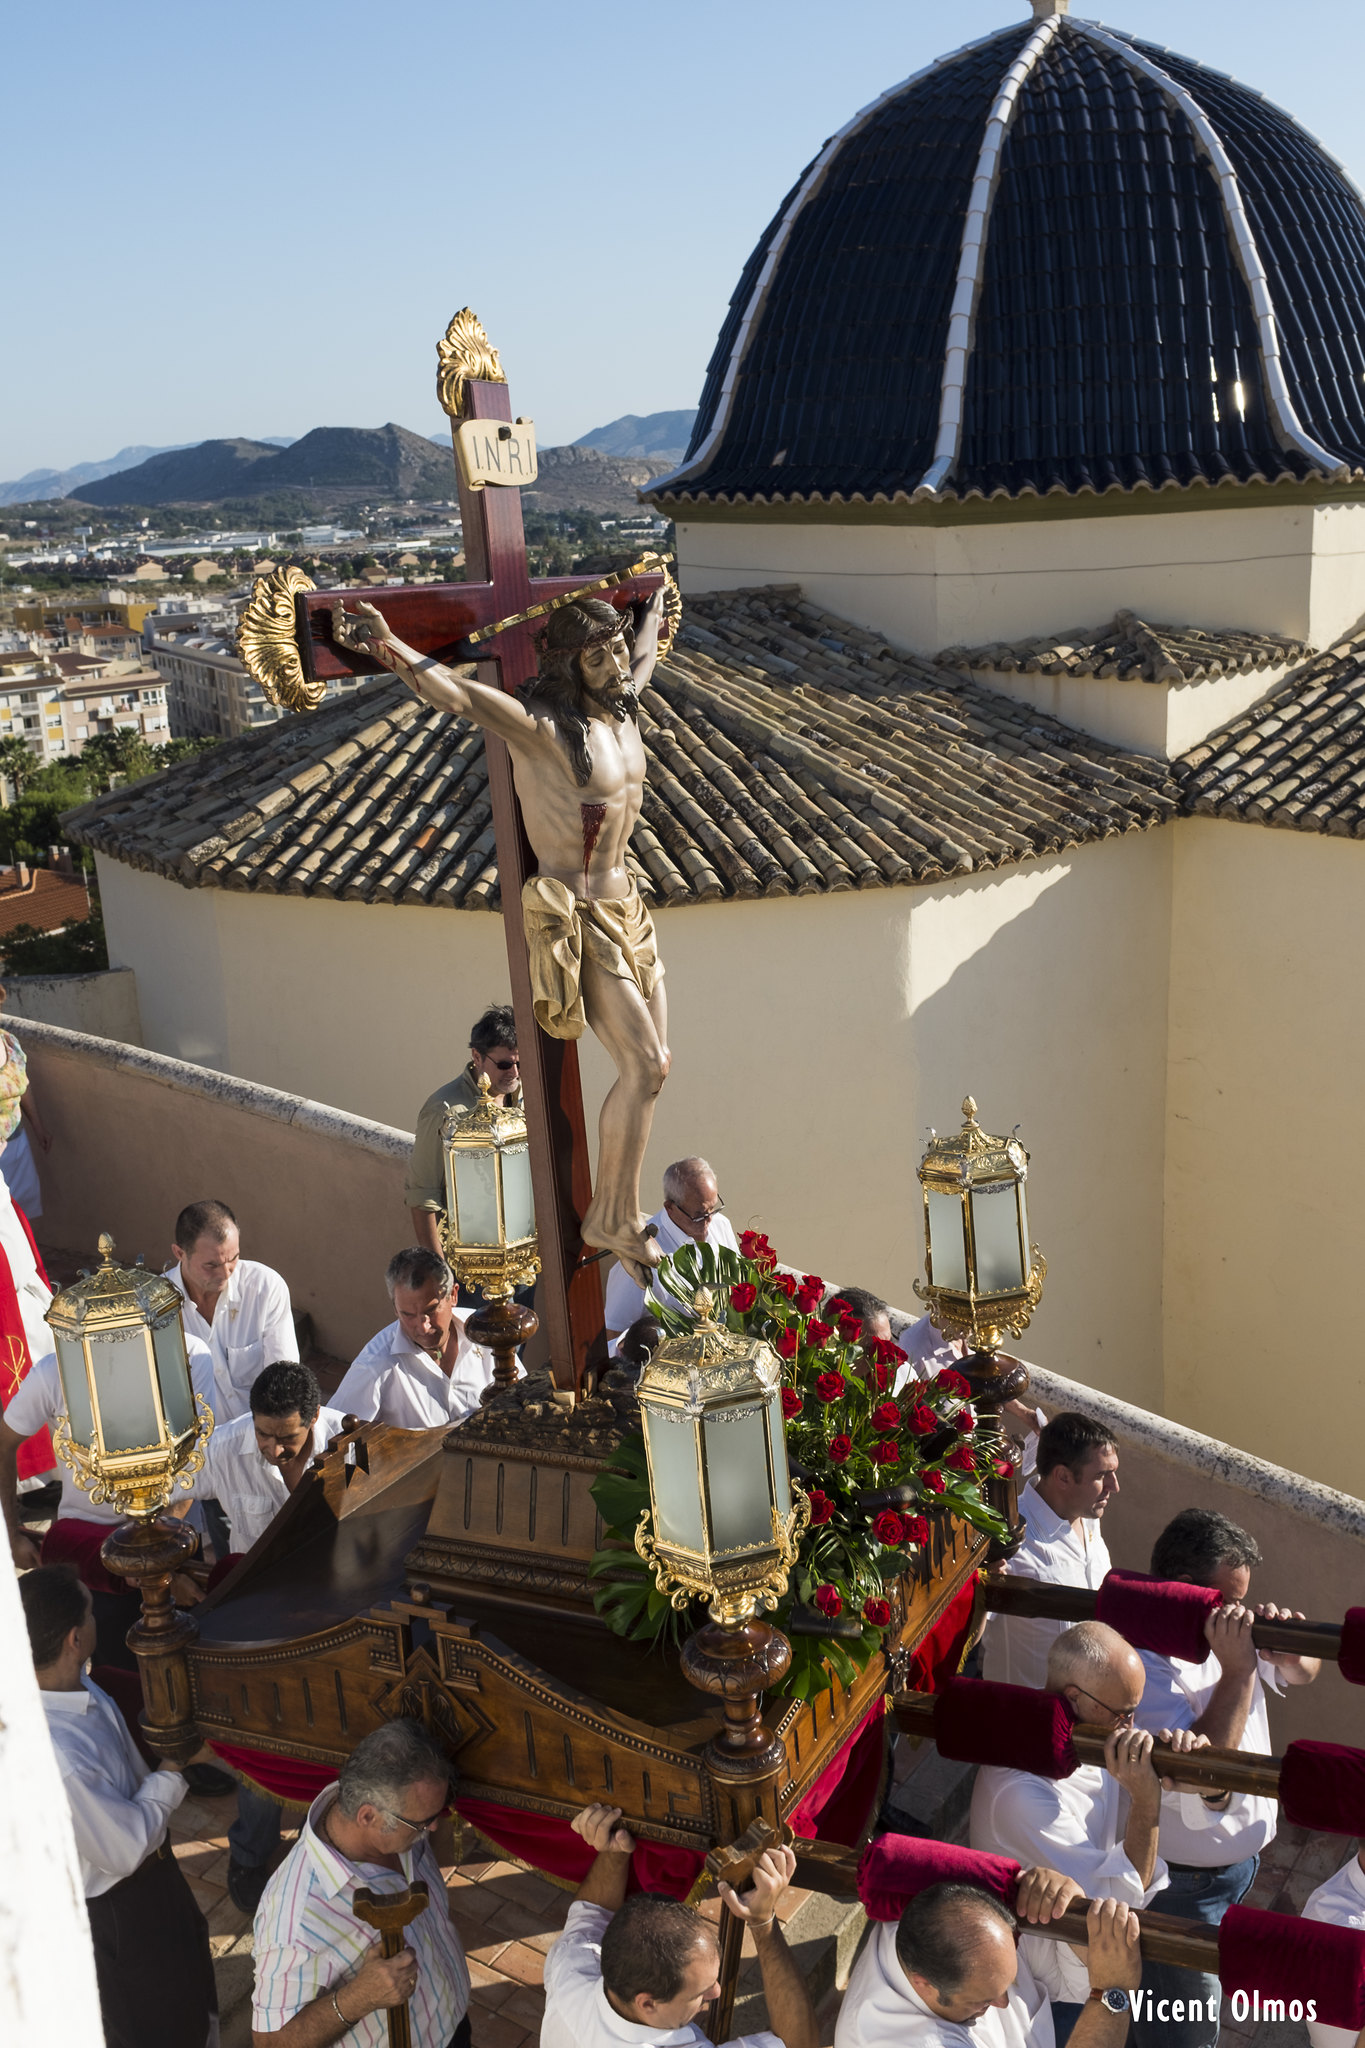 (2014-06-27) - Via Crucis Bajada - Vicent Olmos (09)